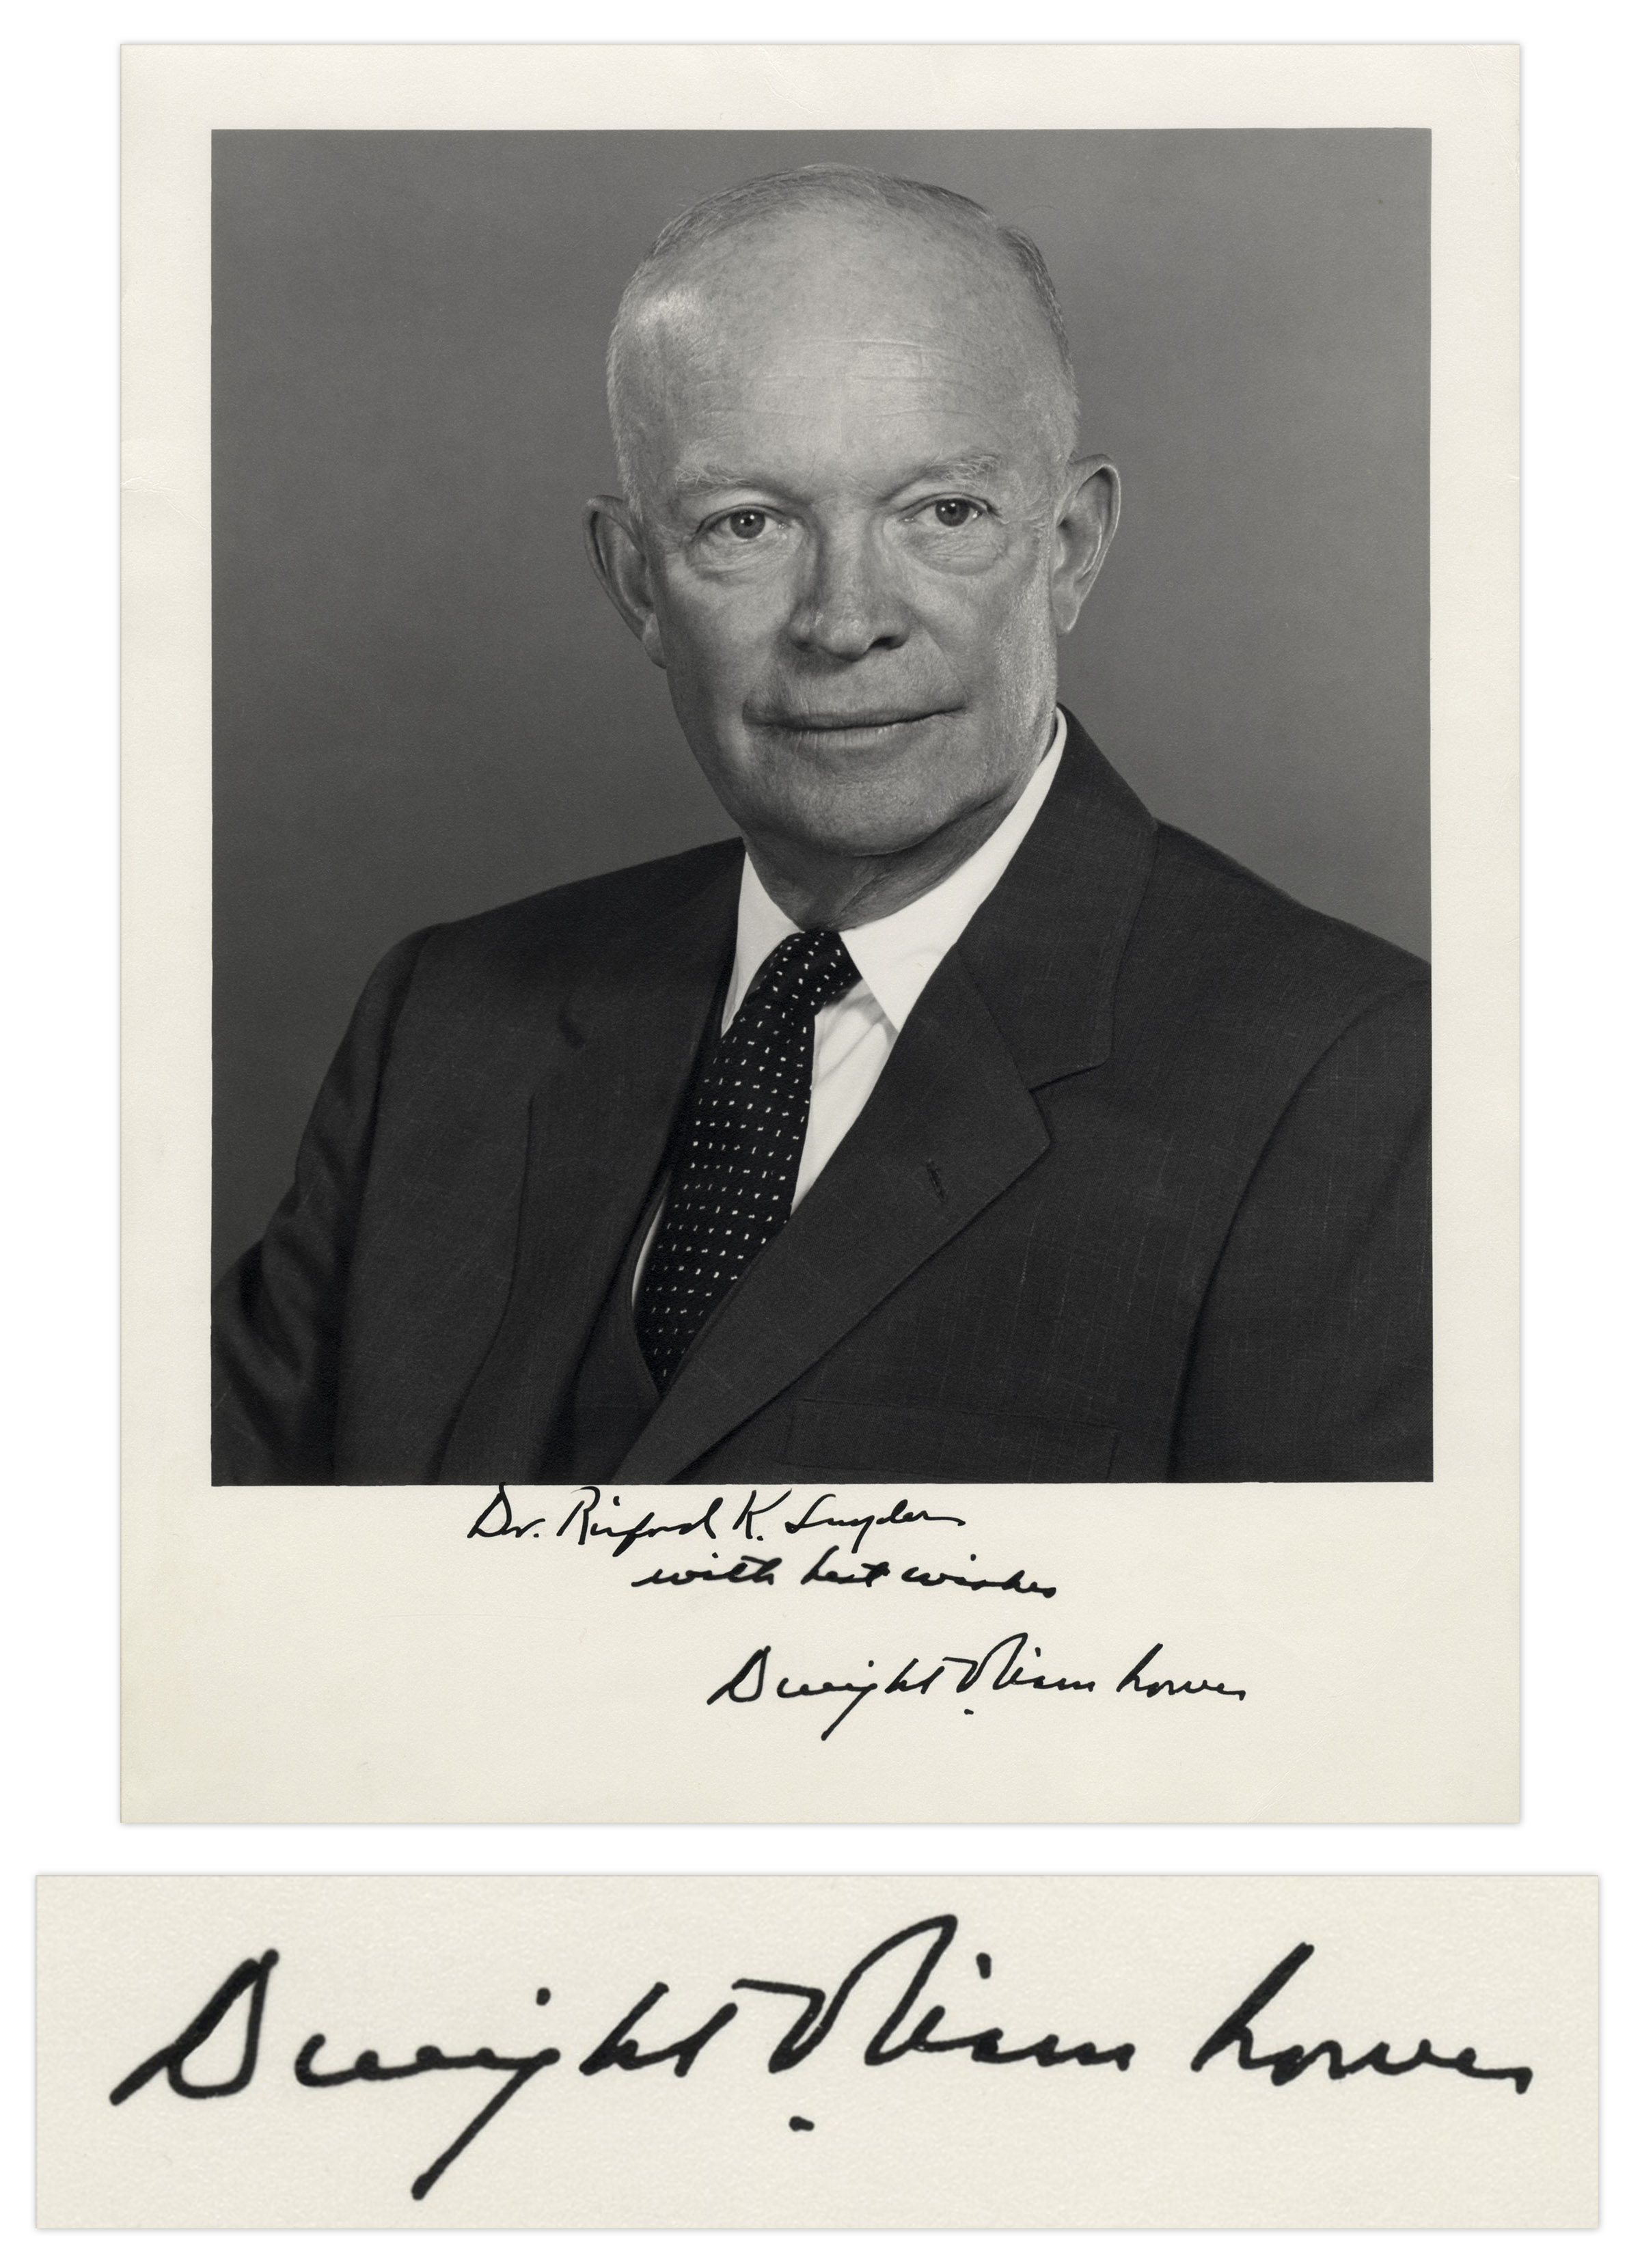 dwight eisenhower research paper A biography or autobiography must be one of the sources, no encyclopedias another sources must be from dwight eisenhower, a speech,published diary, book of published letters, an essay, speech,sermon etc written by dwight eisenhower.